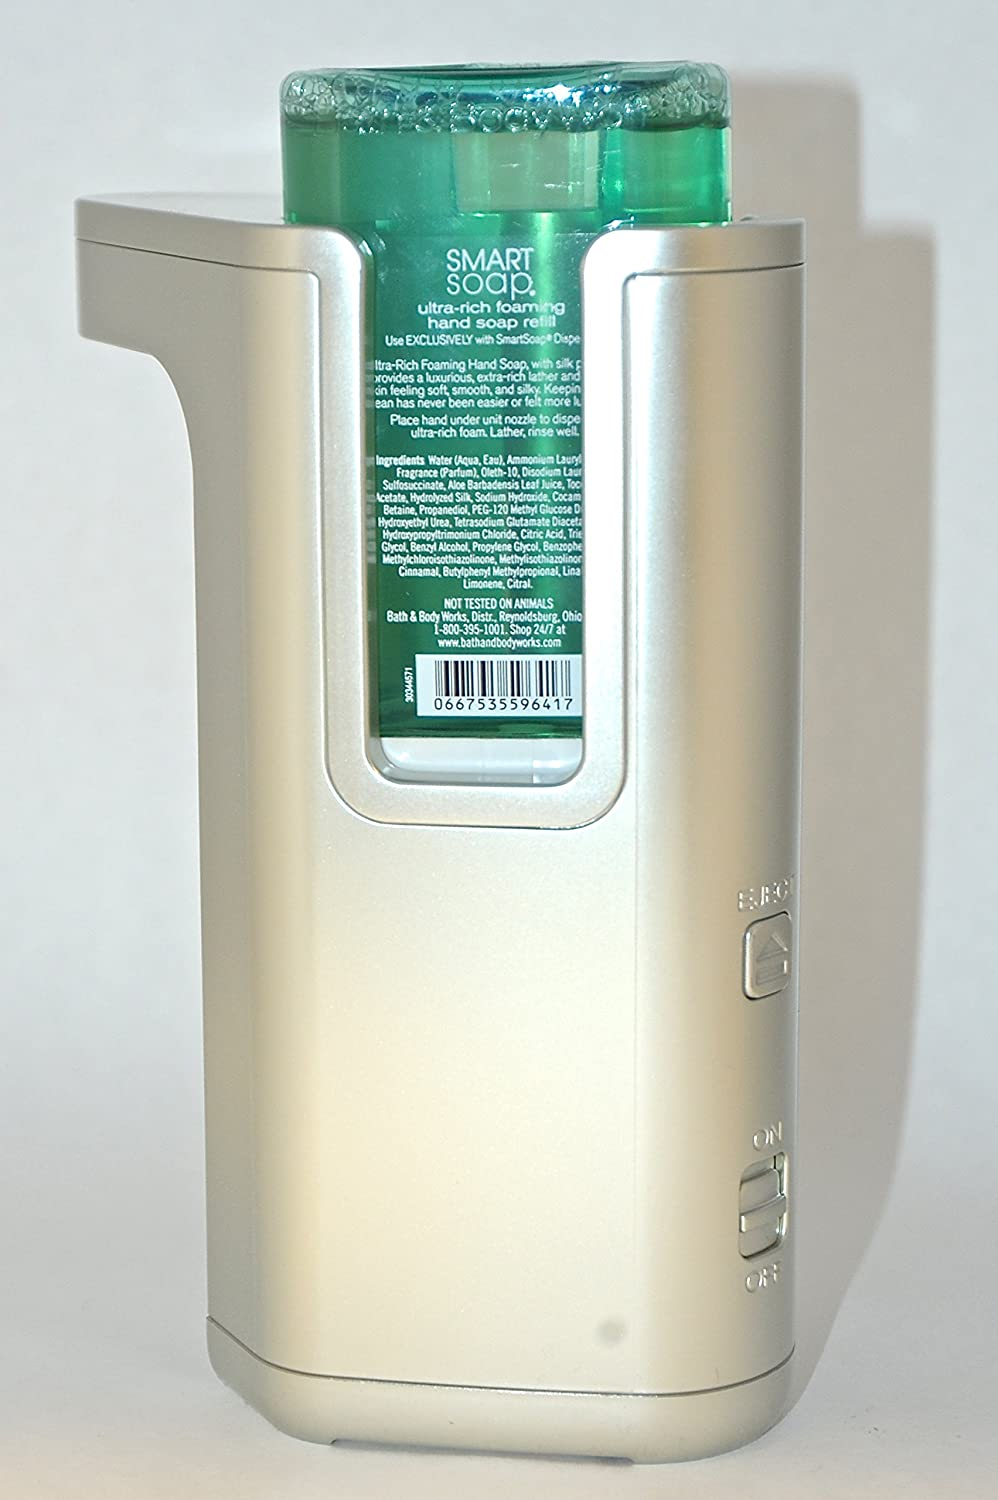 amazoncom bath  body works touch free smartsoap automatic hand  - amazoncom bath  body works touch free smartsoap automatic hand soapdispenser  silver dispenser (soap refills sold separately) home  kitchen